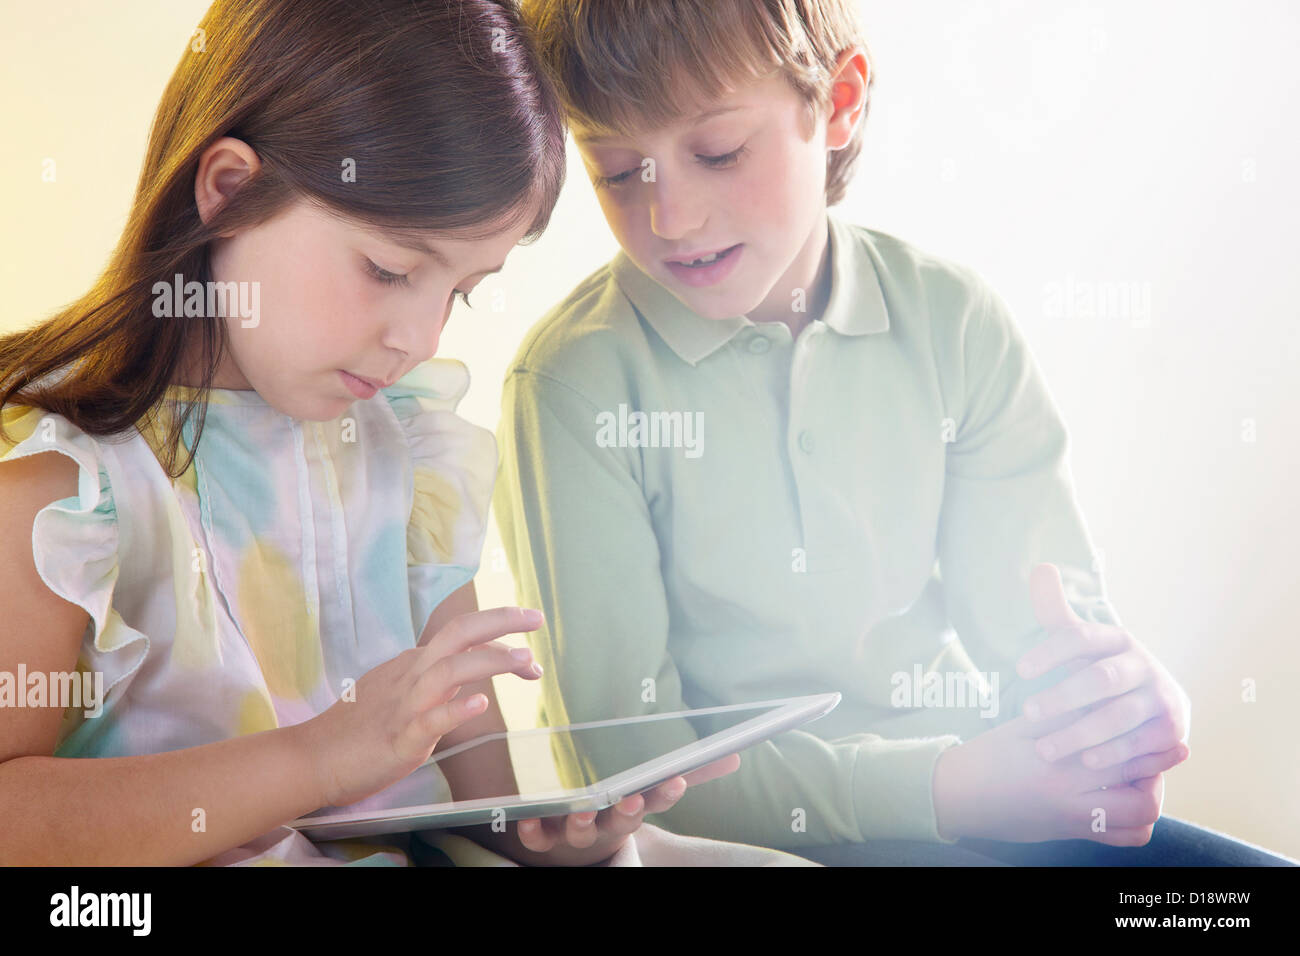 Girl and boy using digital tablet with bright light - Stock Image